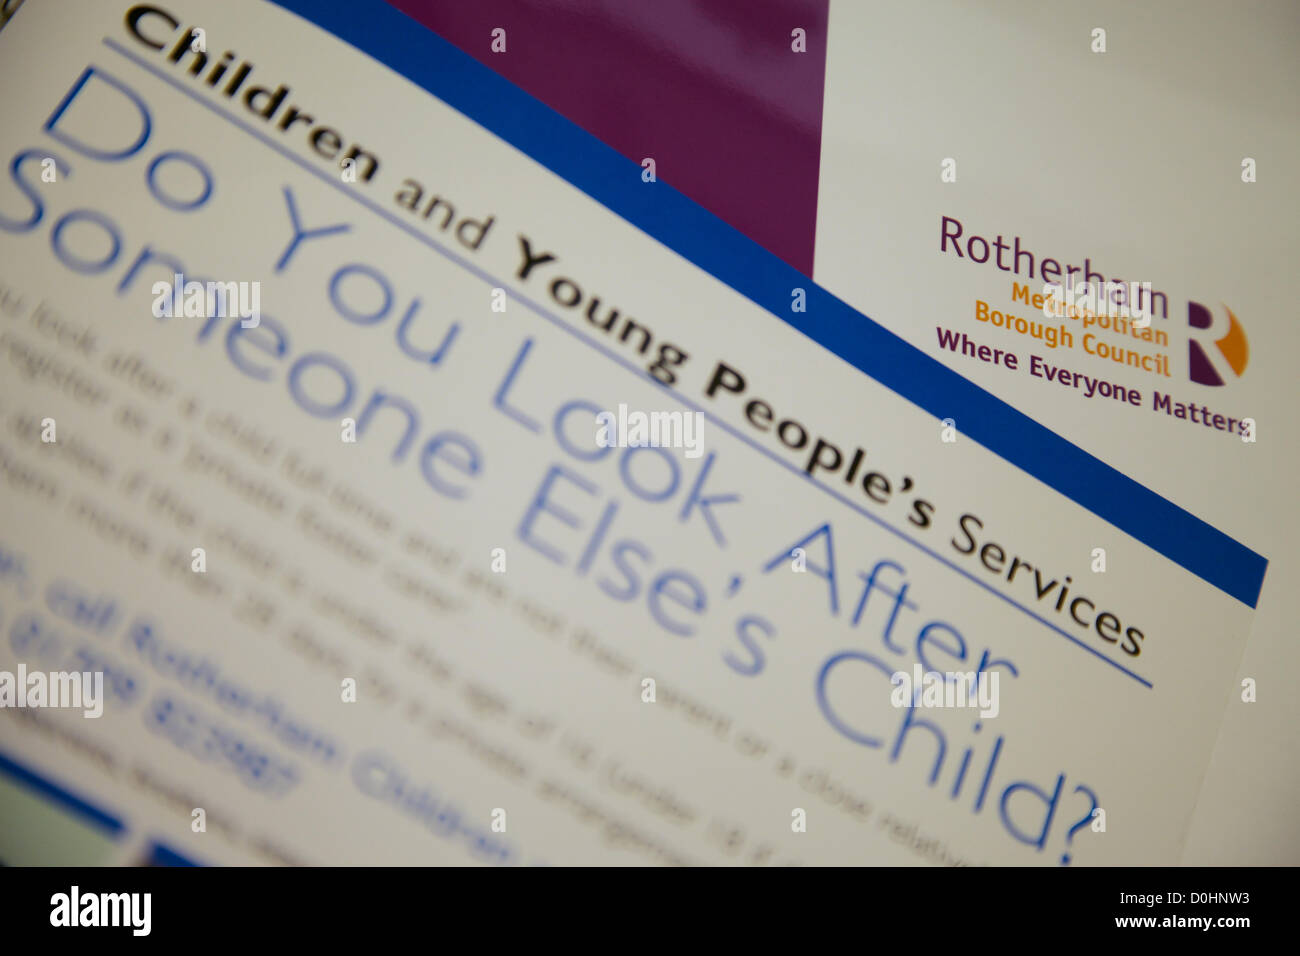 Rotherham Metropolitan Borough Council Fostering Literature - Stock Image